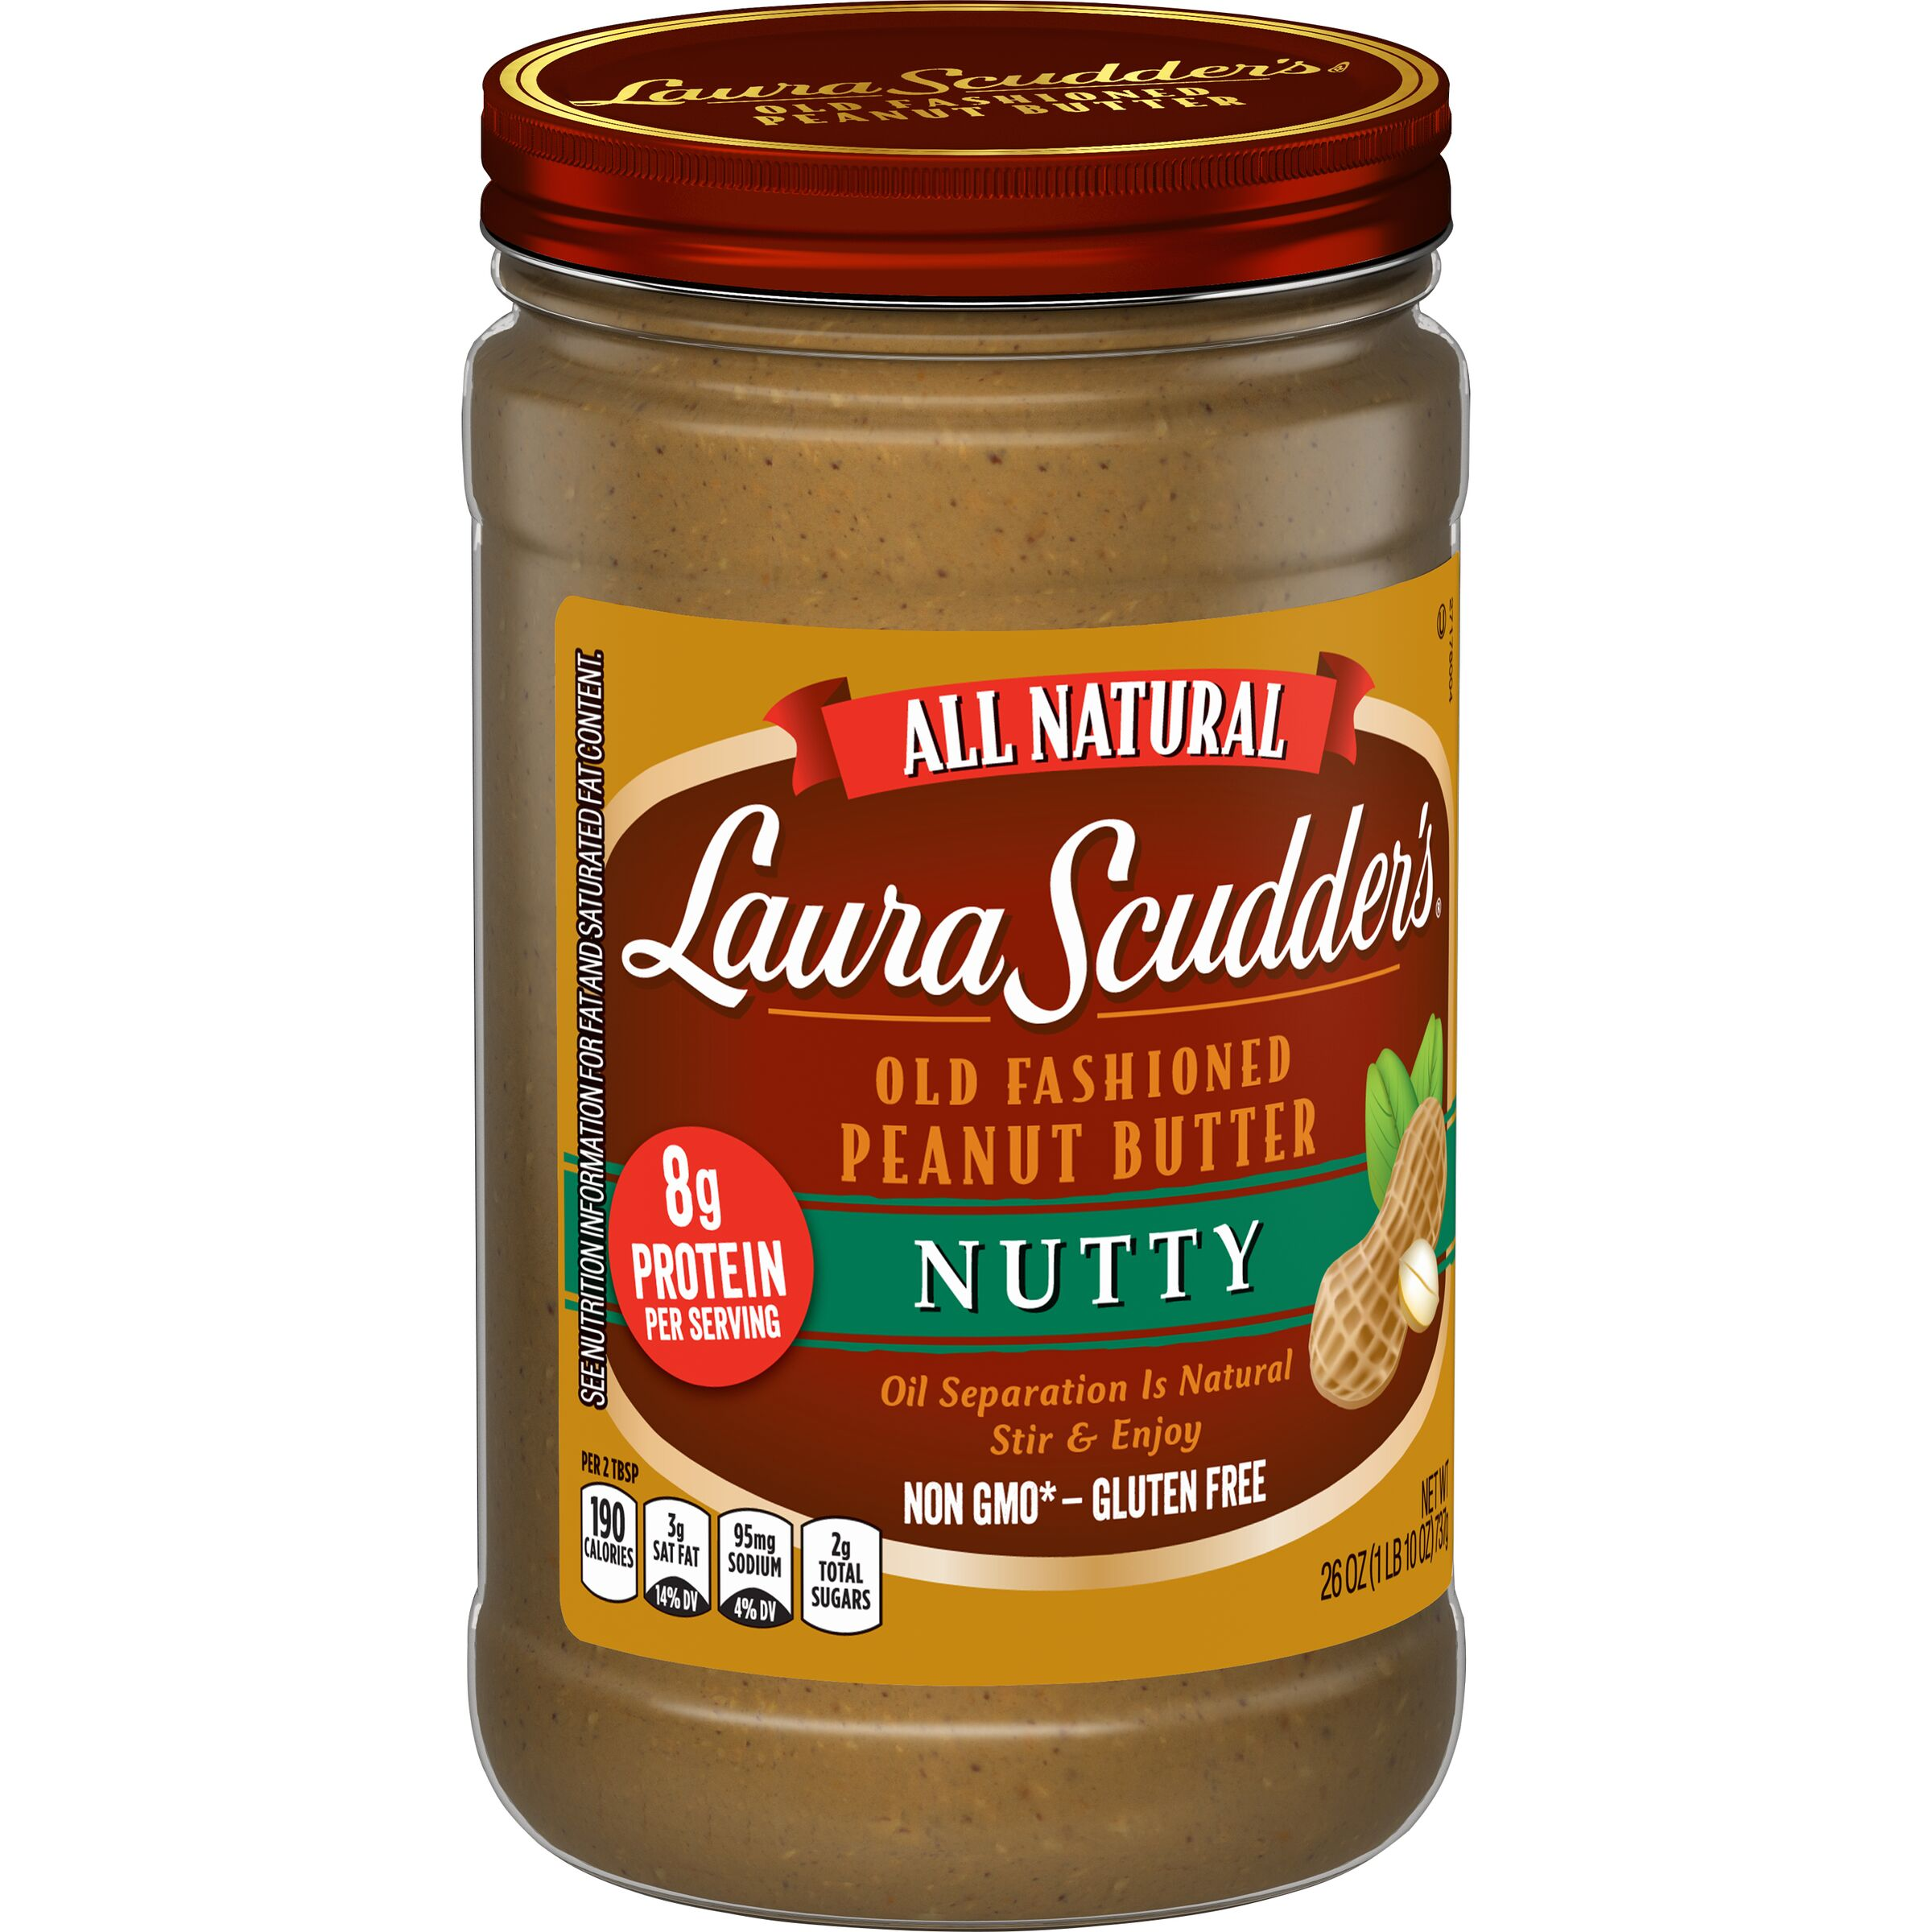 Laura Scudder's  Natural Nutty Peanut Butter